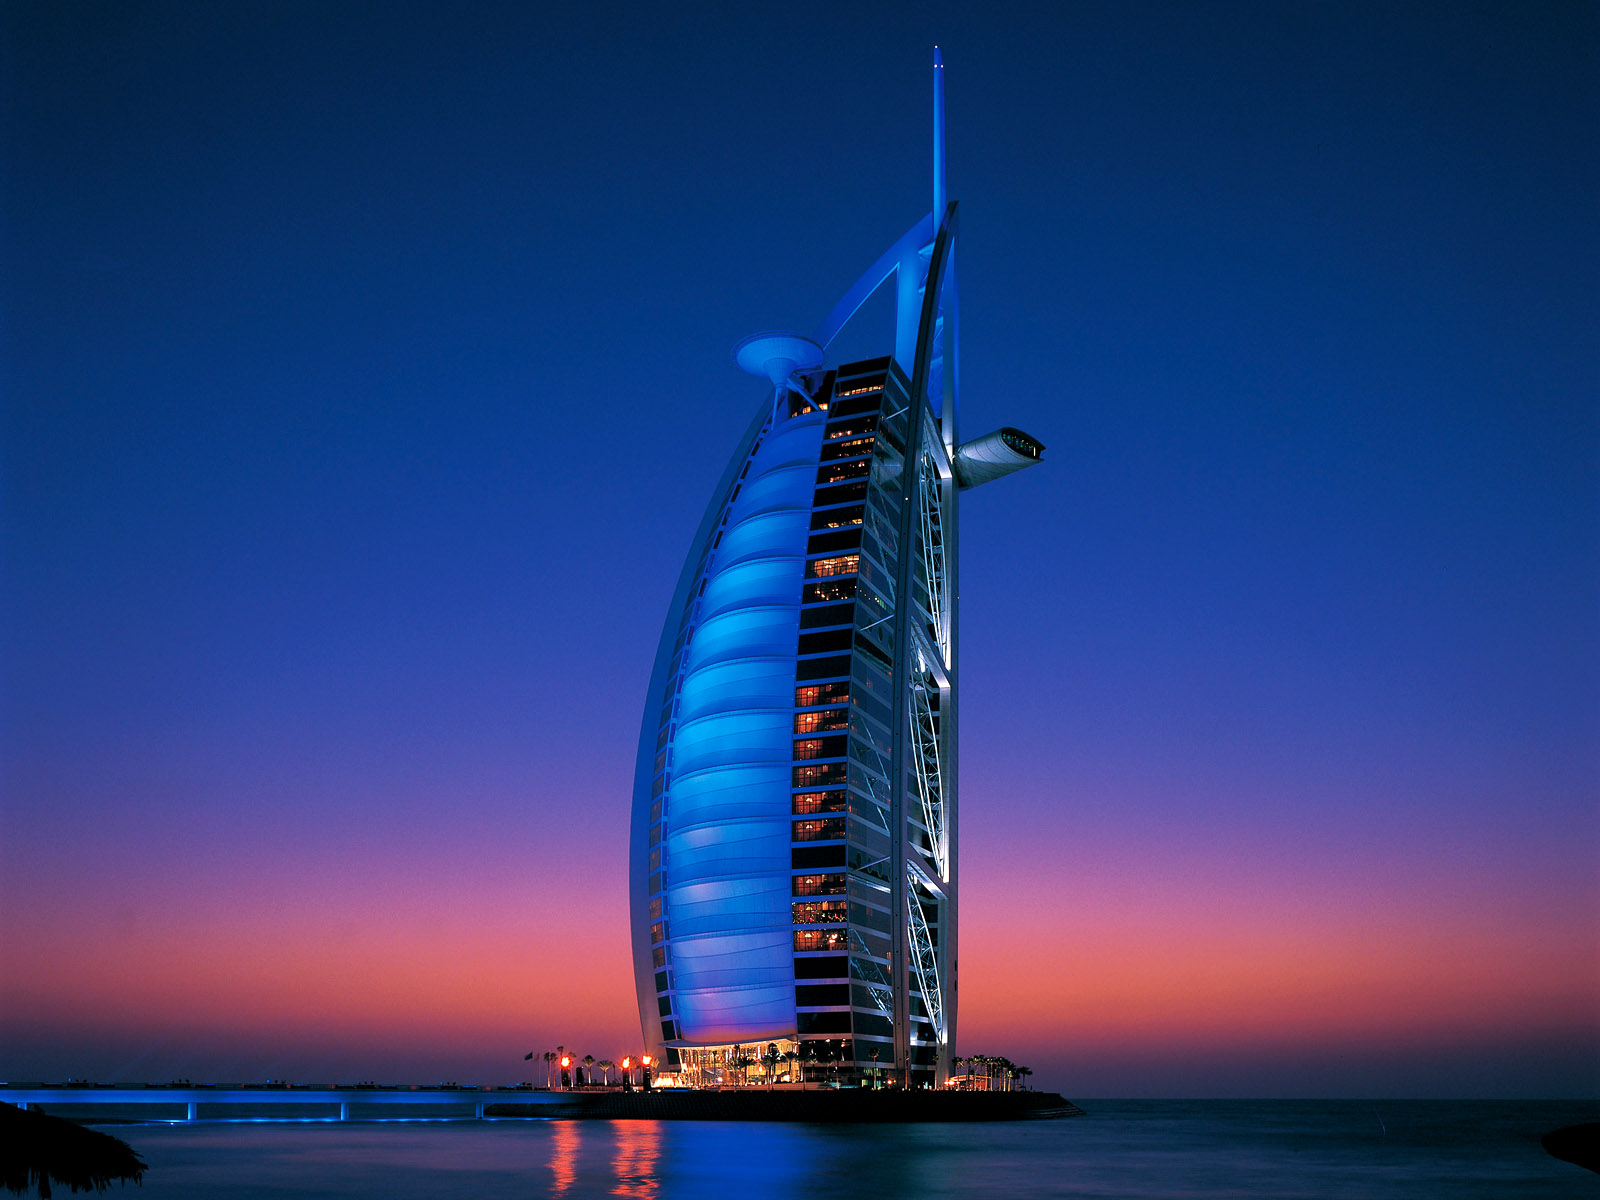 Burj al arab hotel dubai world travel destinations for Burj al arab